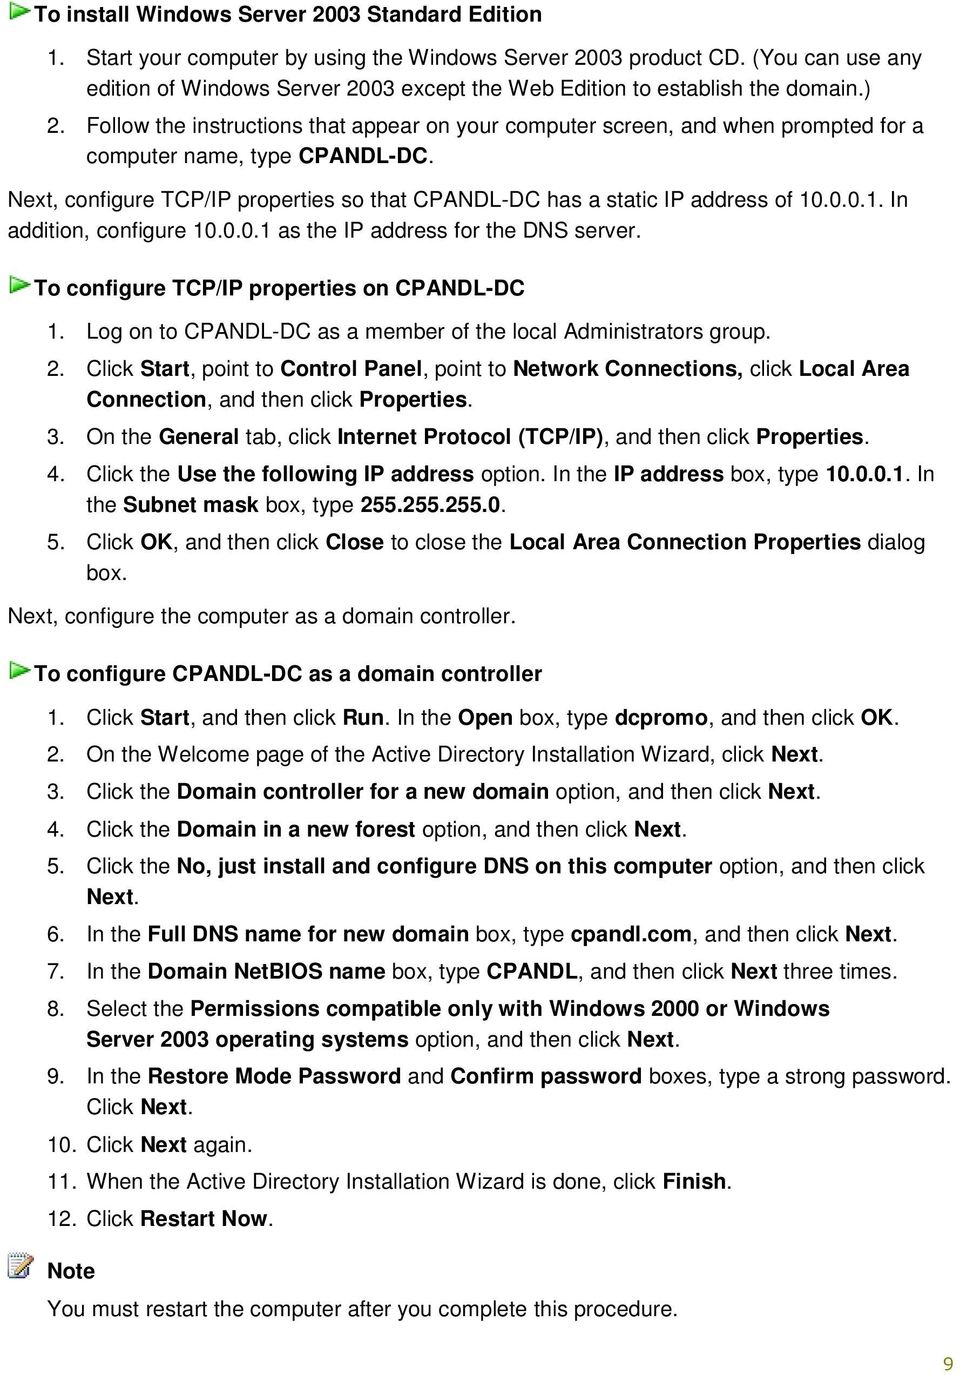 Follow the instructions that appear on your computer screen, and when prompted for a computer name, type CPANDL-DC. Next, configure TCP/IP properties so that CPANDL-DC has a static IP address of 10